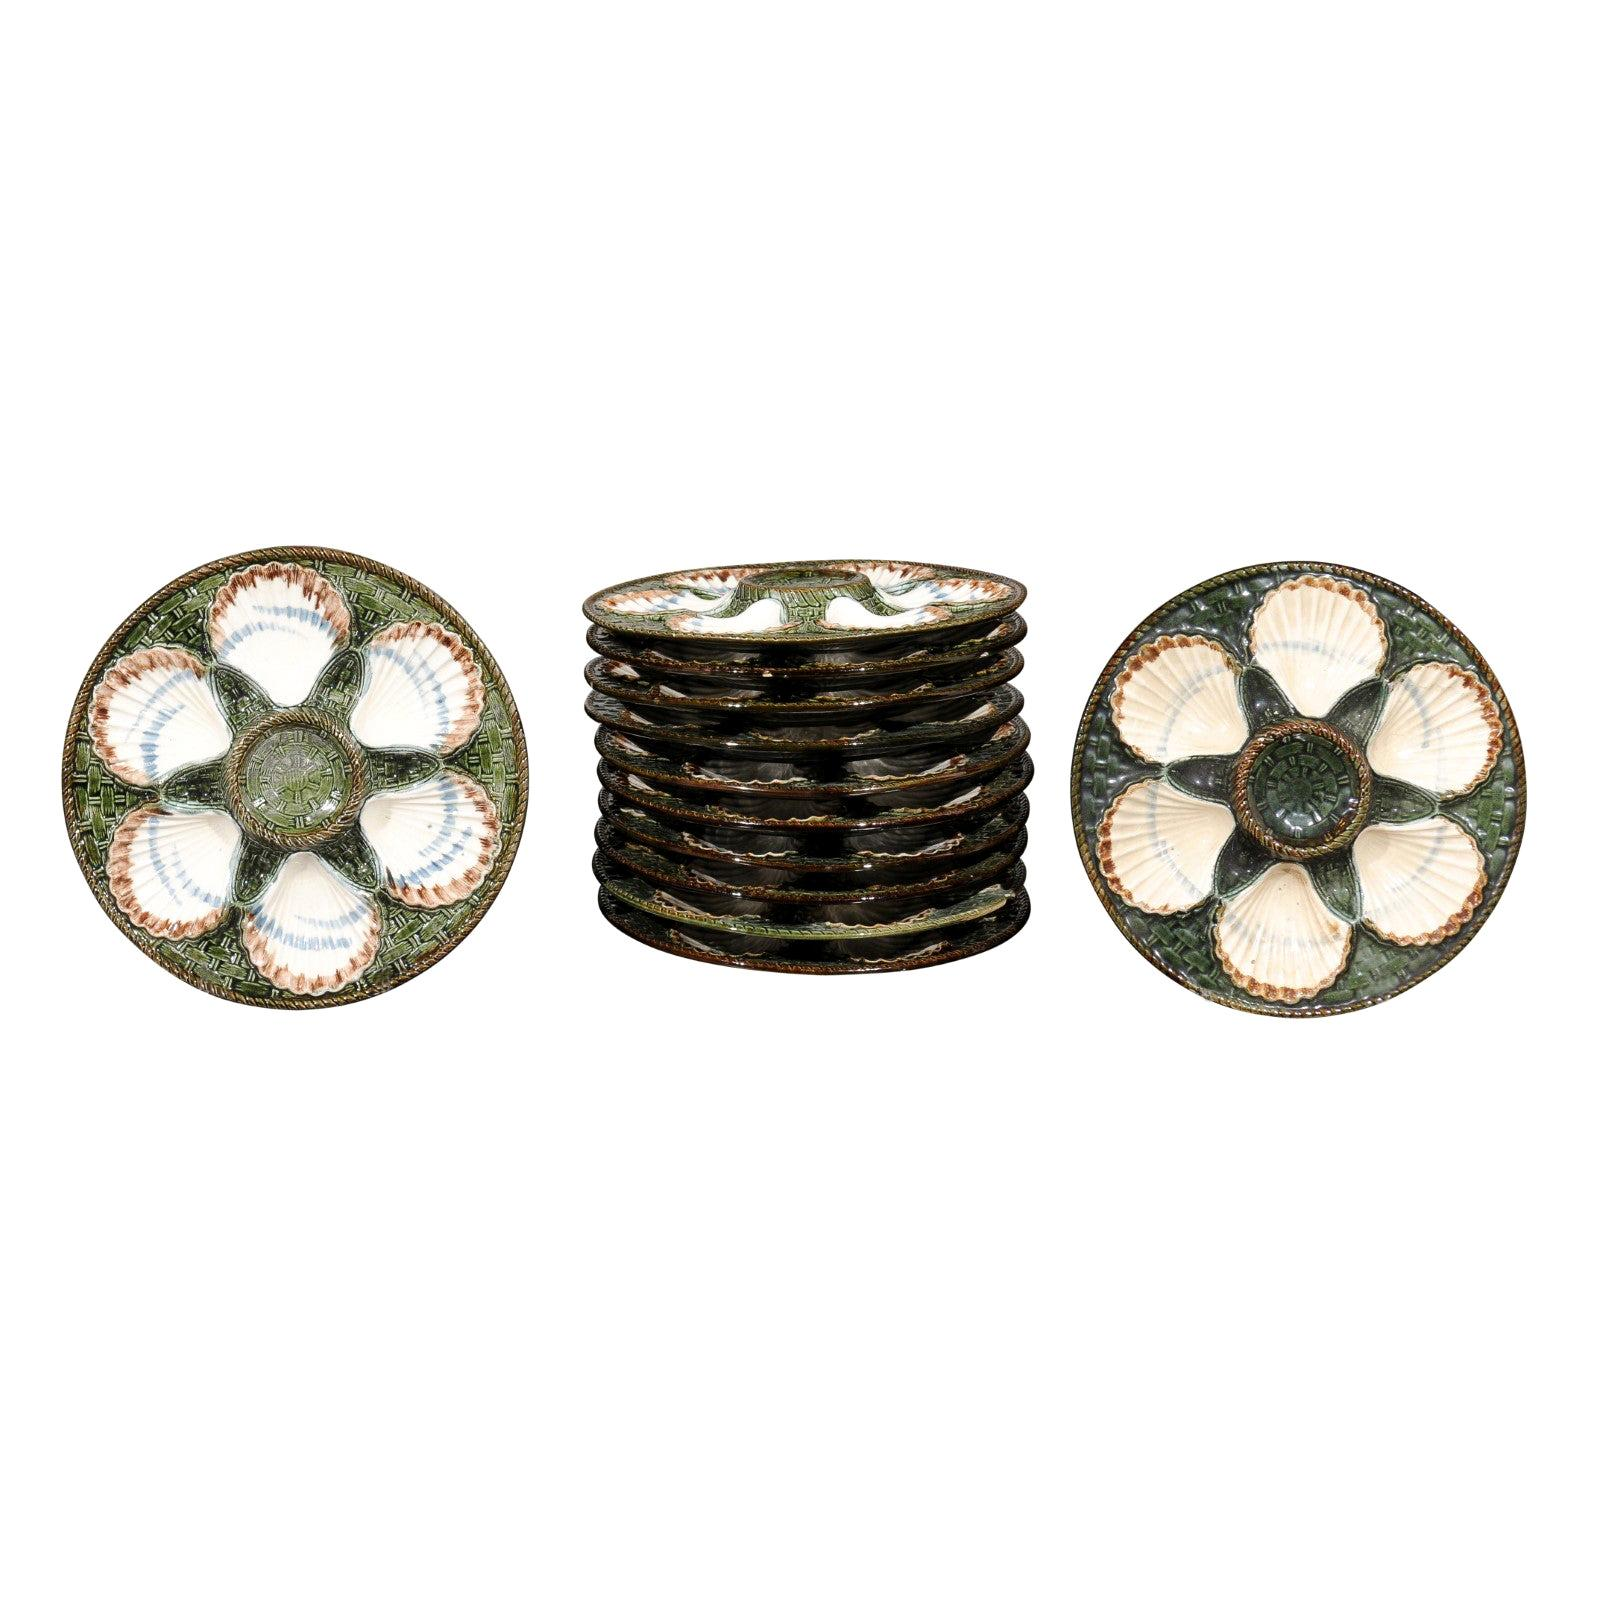 French Majolica Longchamp Terre de Fer Green Scallop Plates, 6 Available